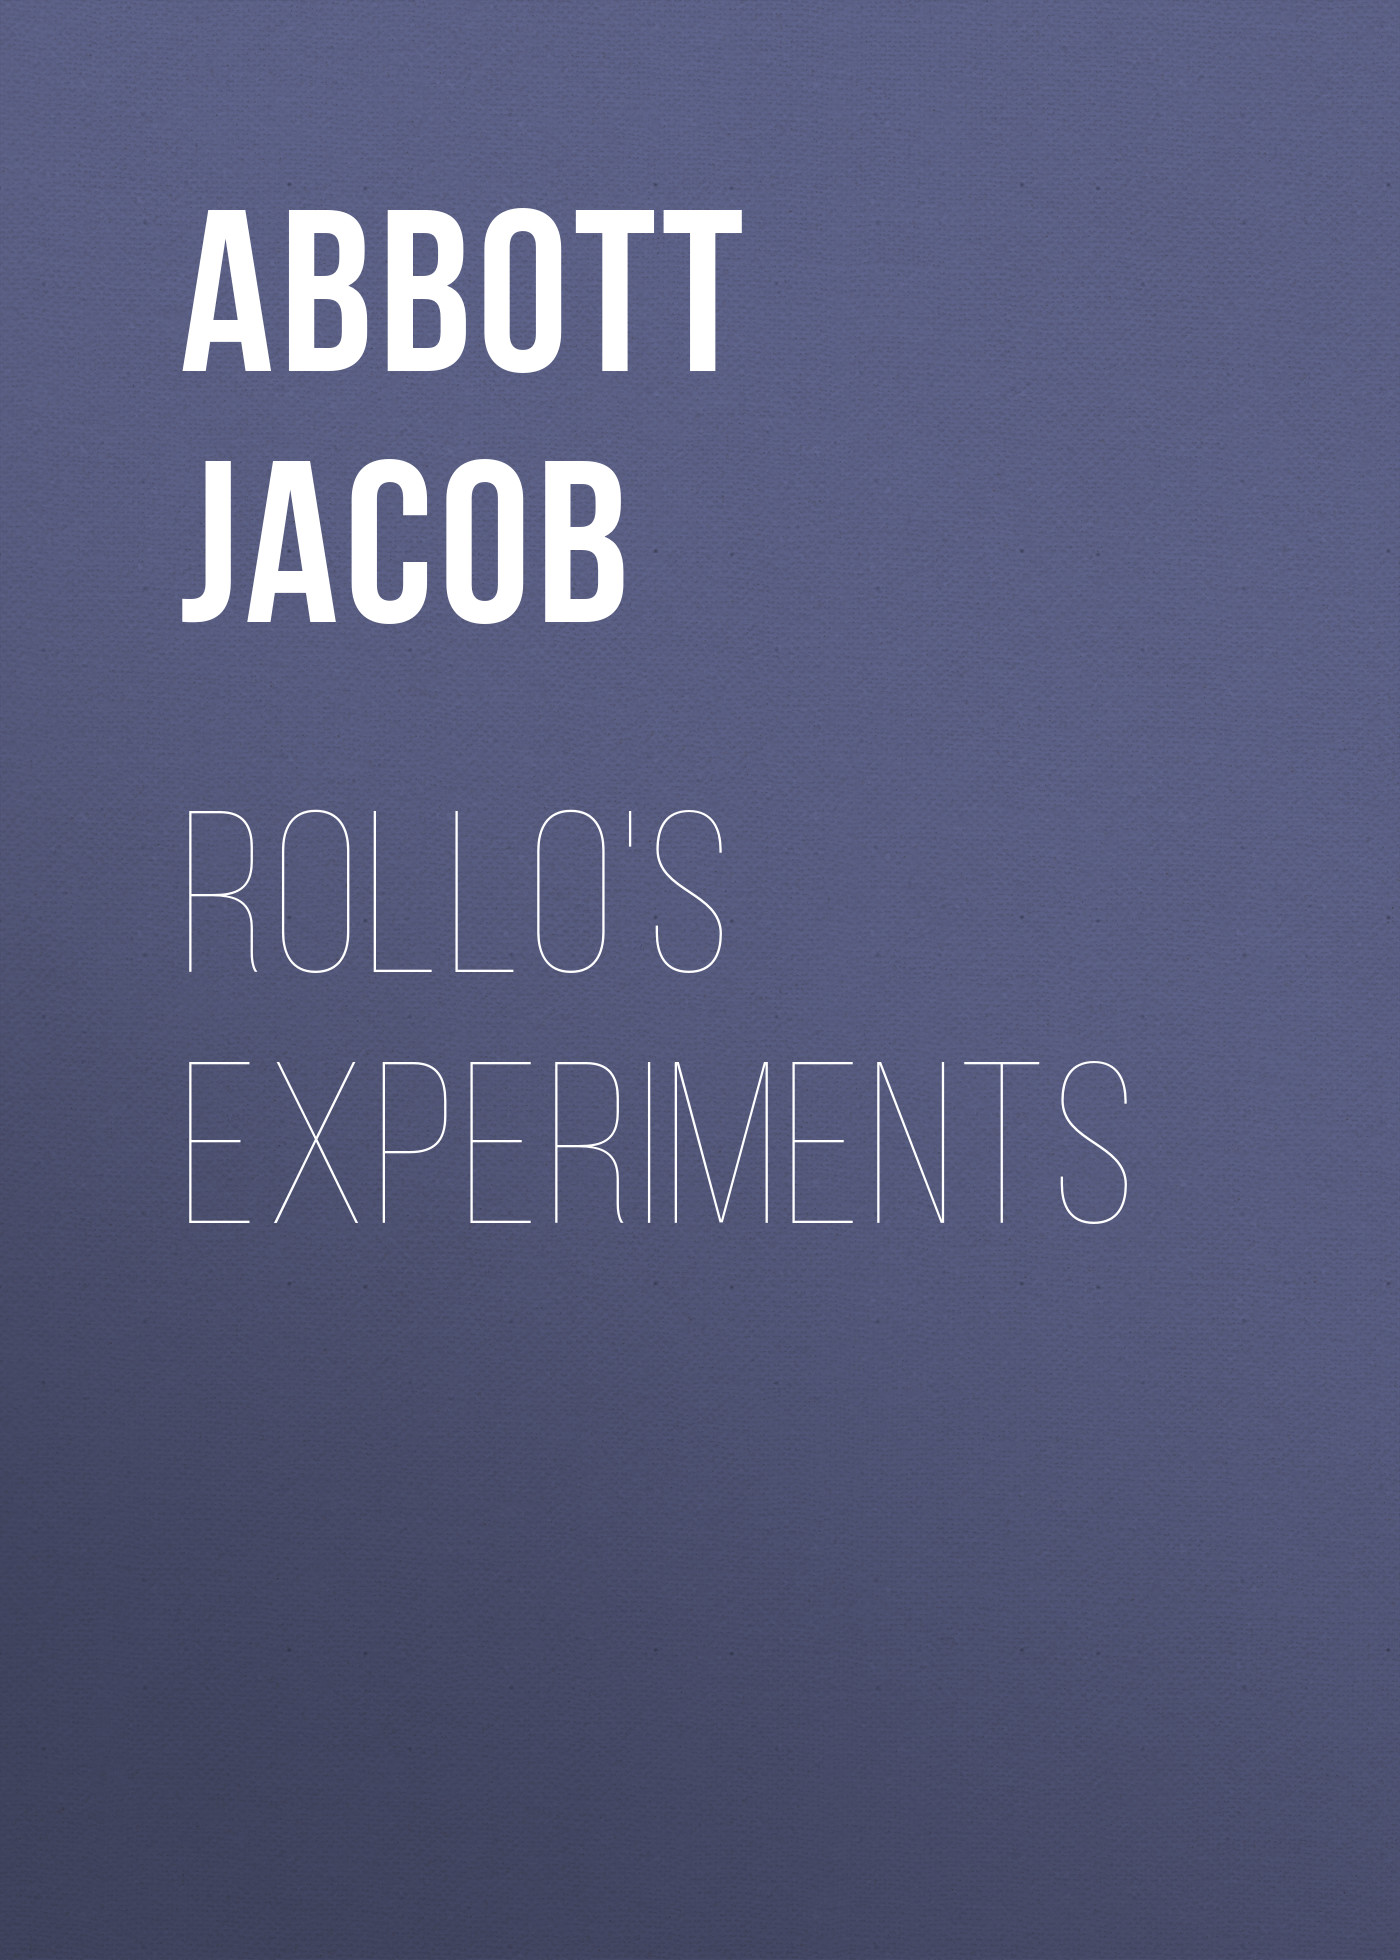 Abbott Jacob Rollo's Experiments jacob abbott charles i